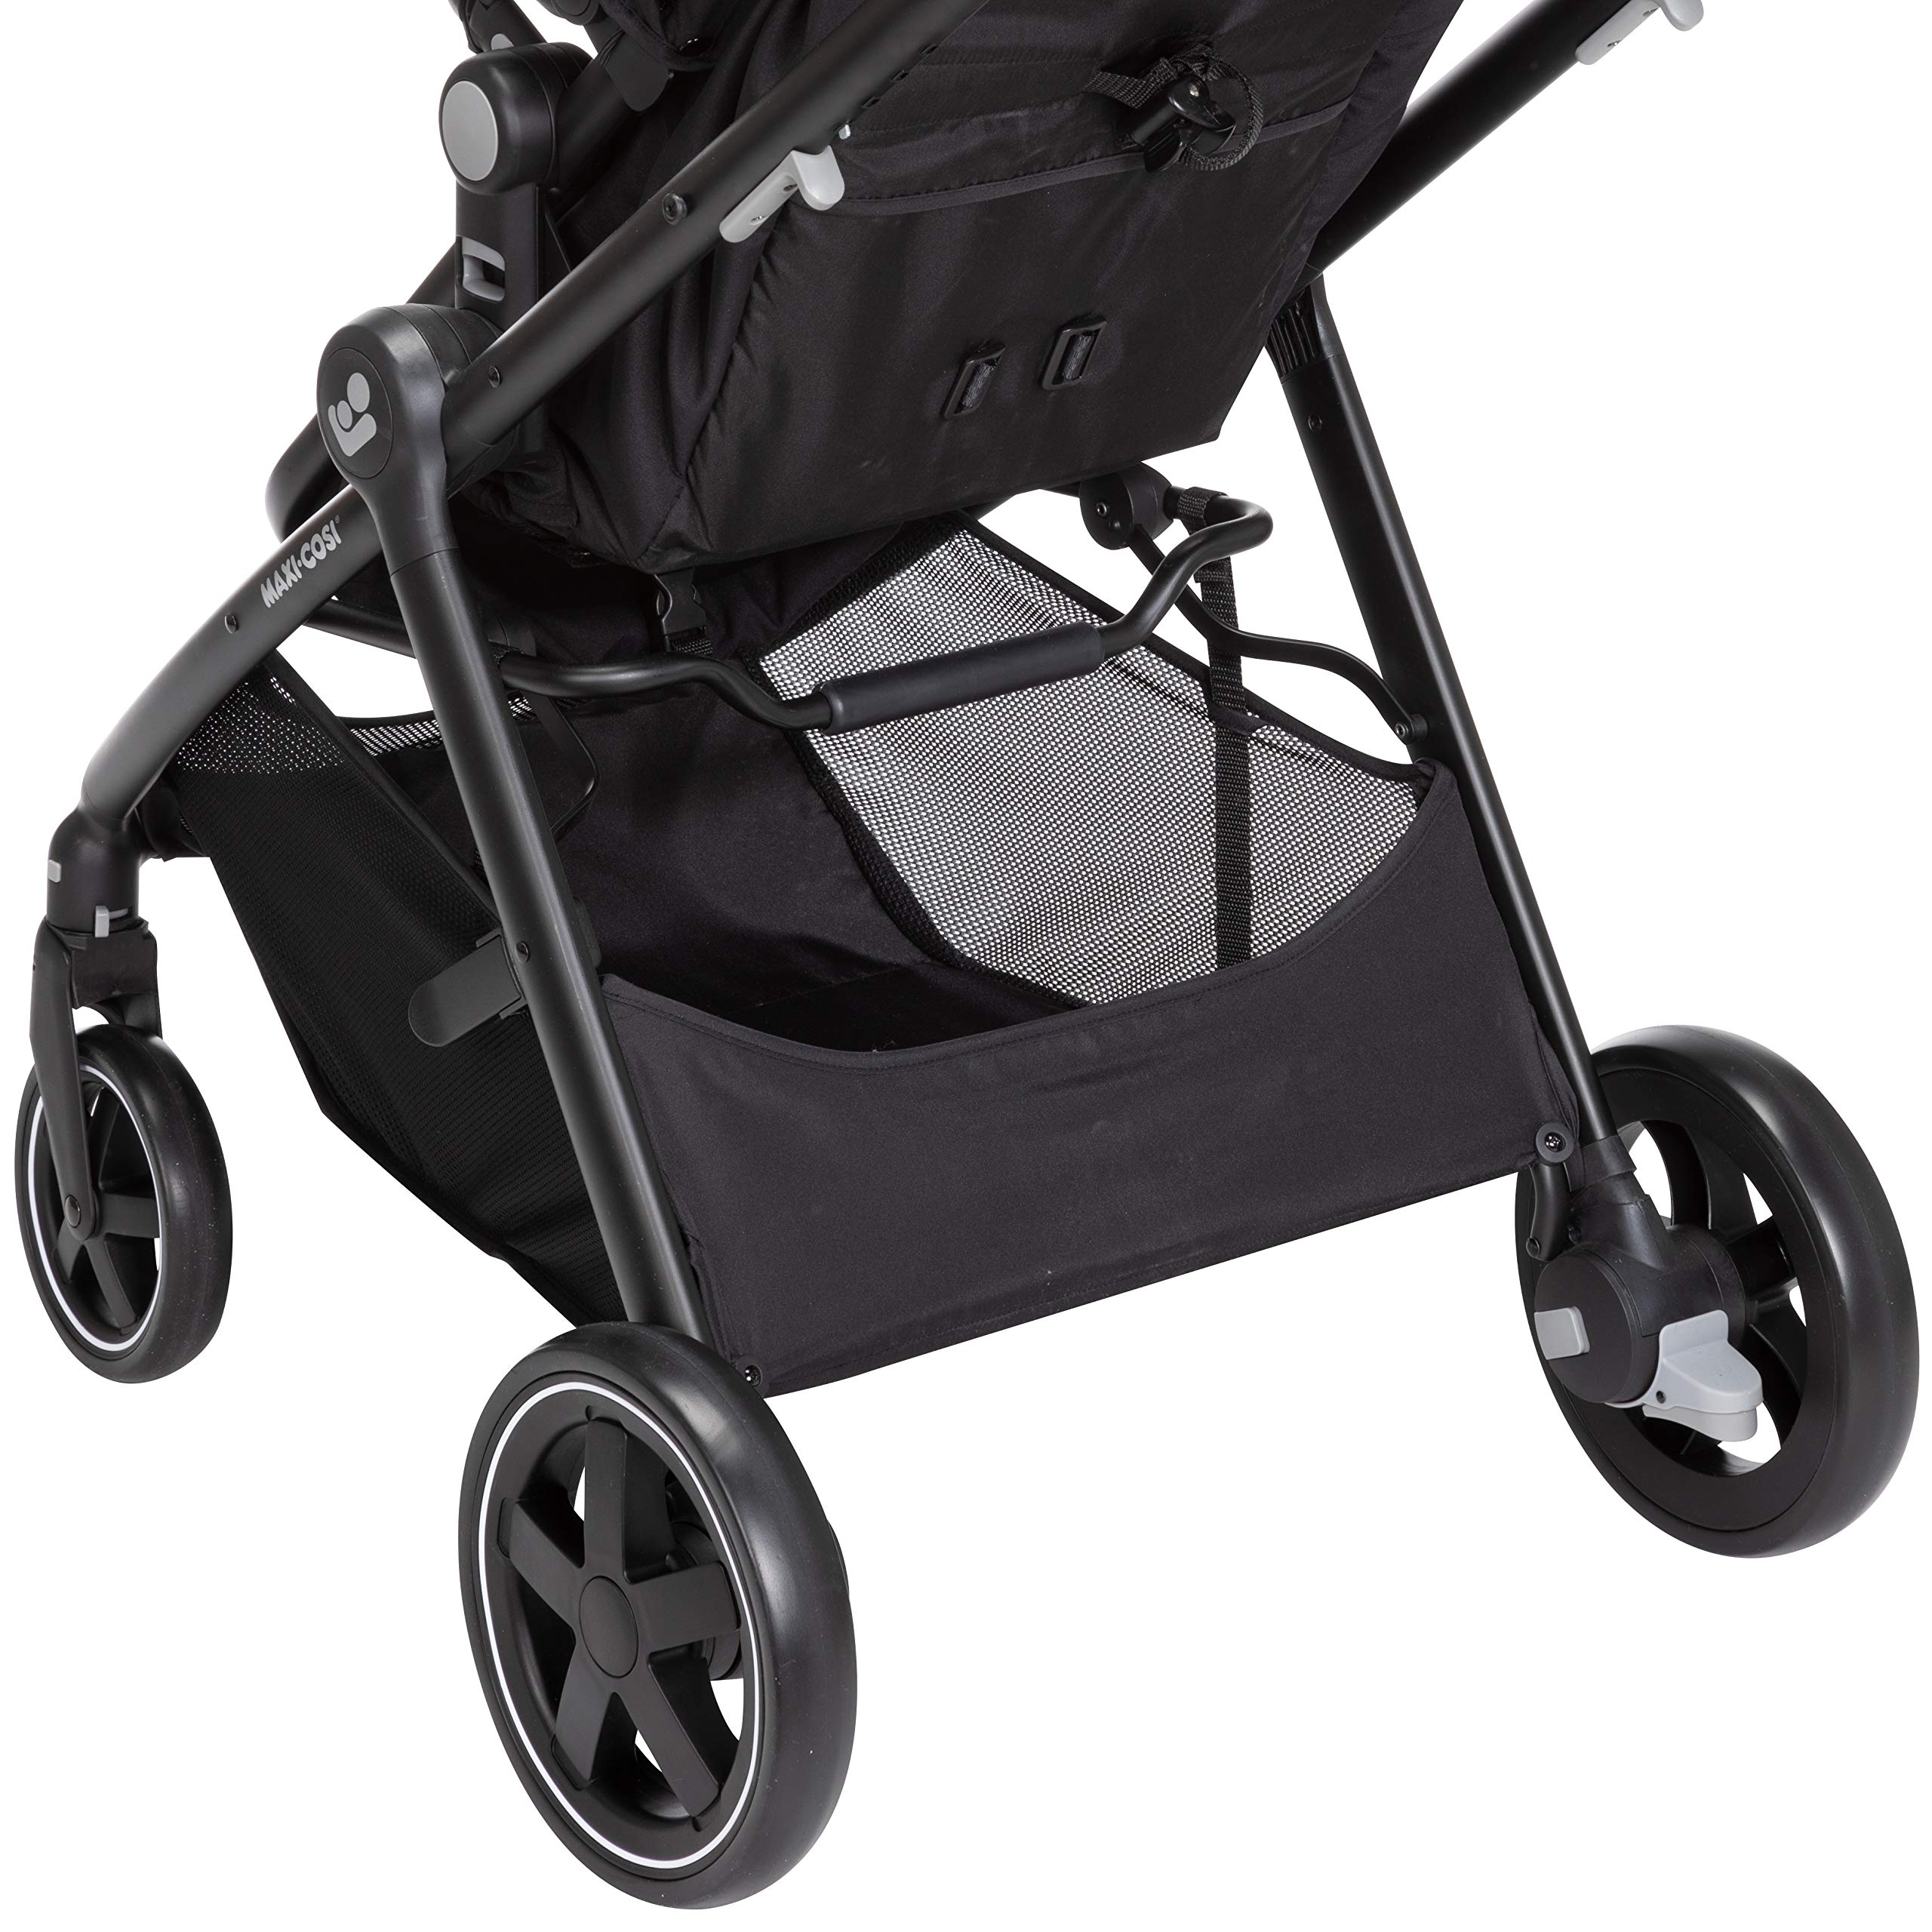 Maxi-Cosi Zelia Stroller, Night Black, One Size by Maxi-Cosi (Image #5)